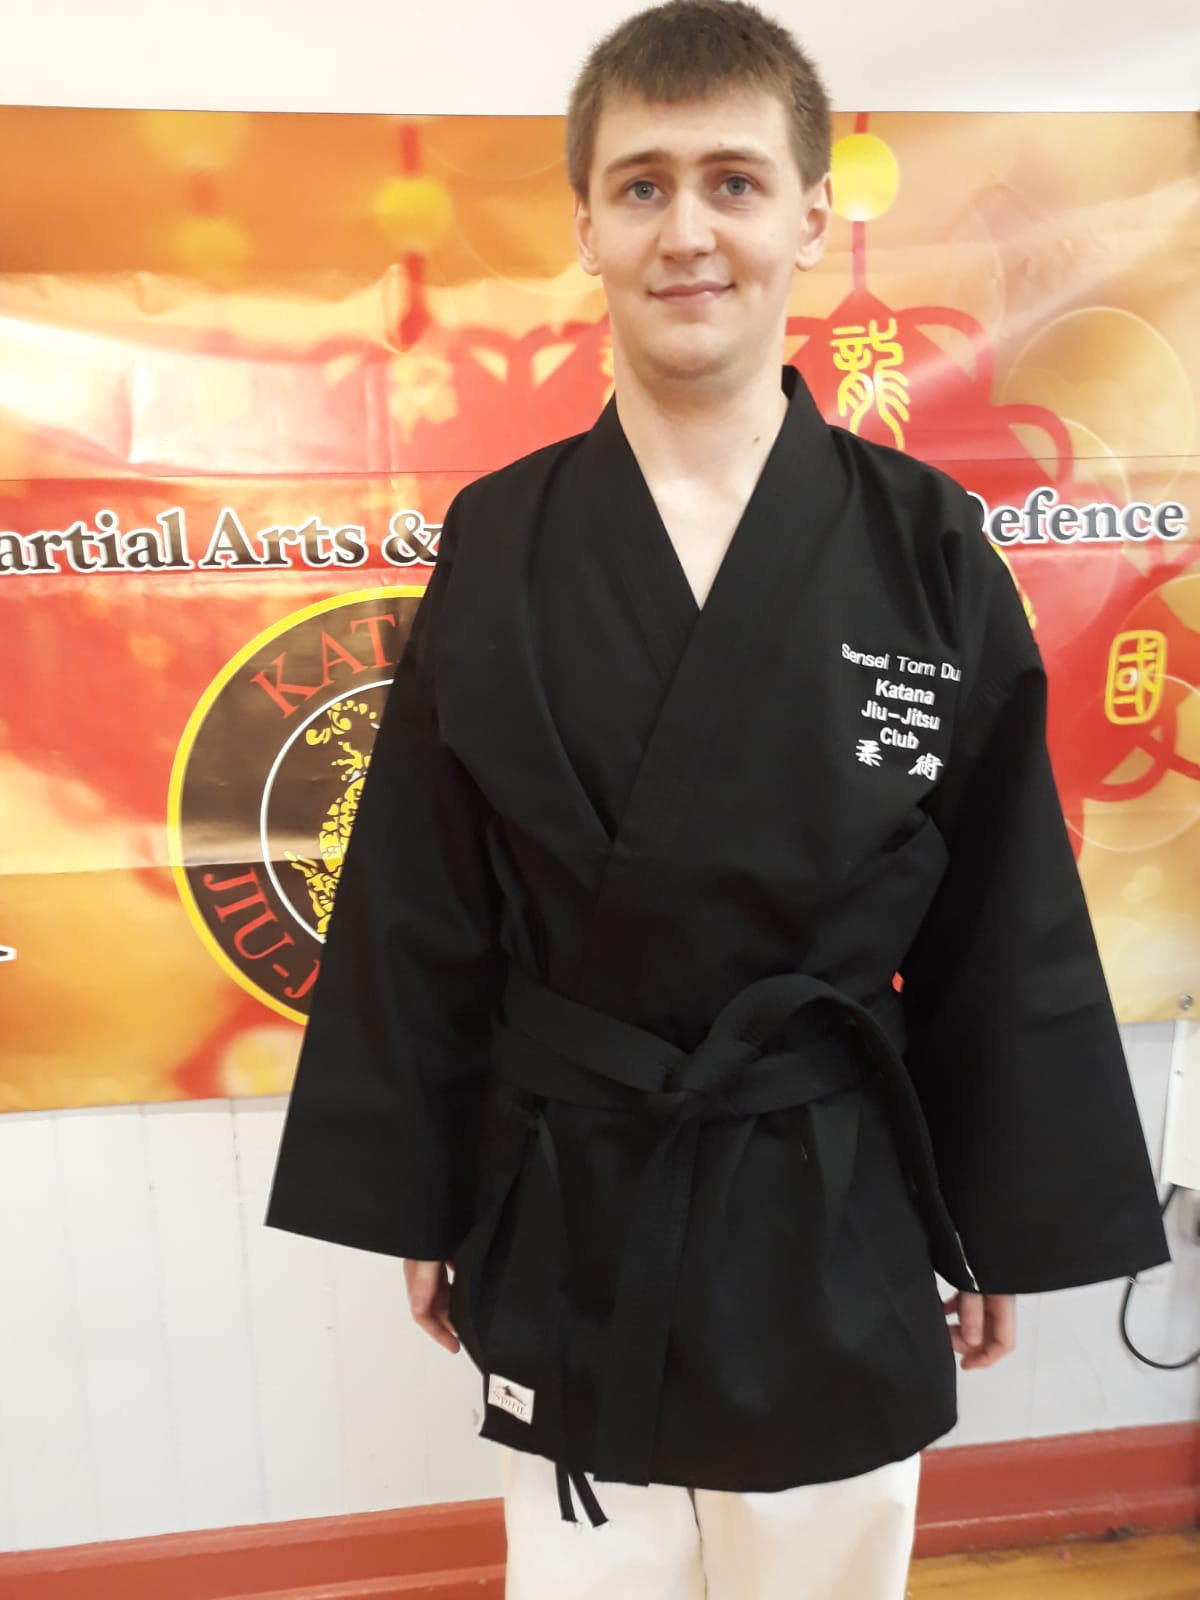 Sensei Tom Duffy